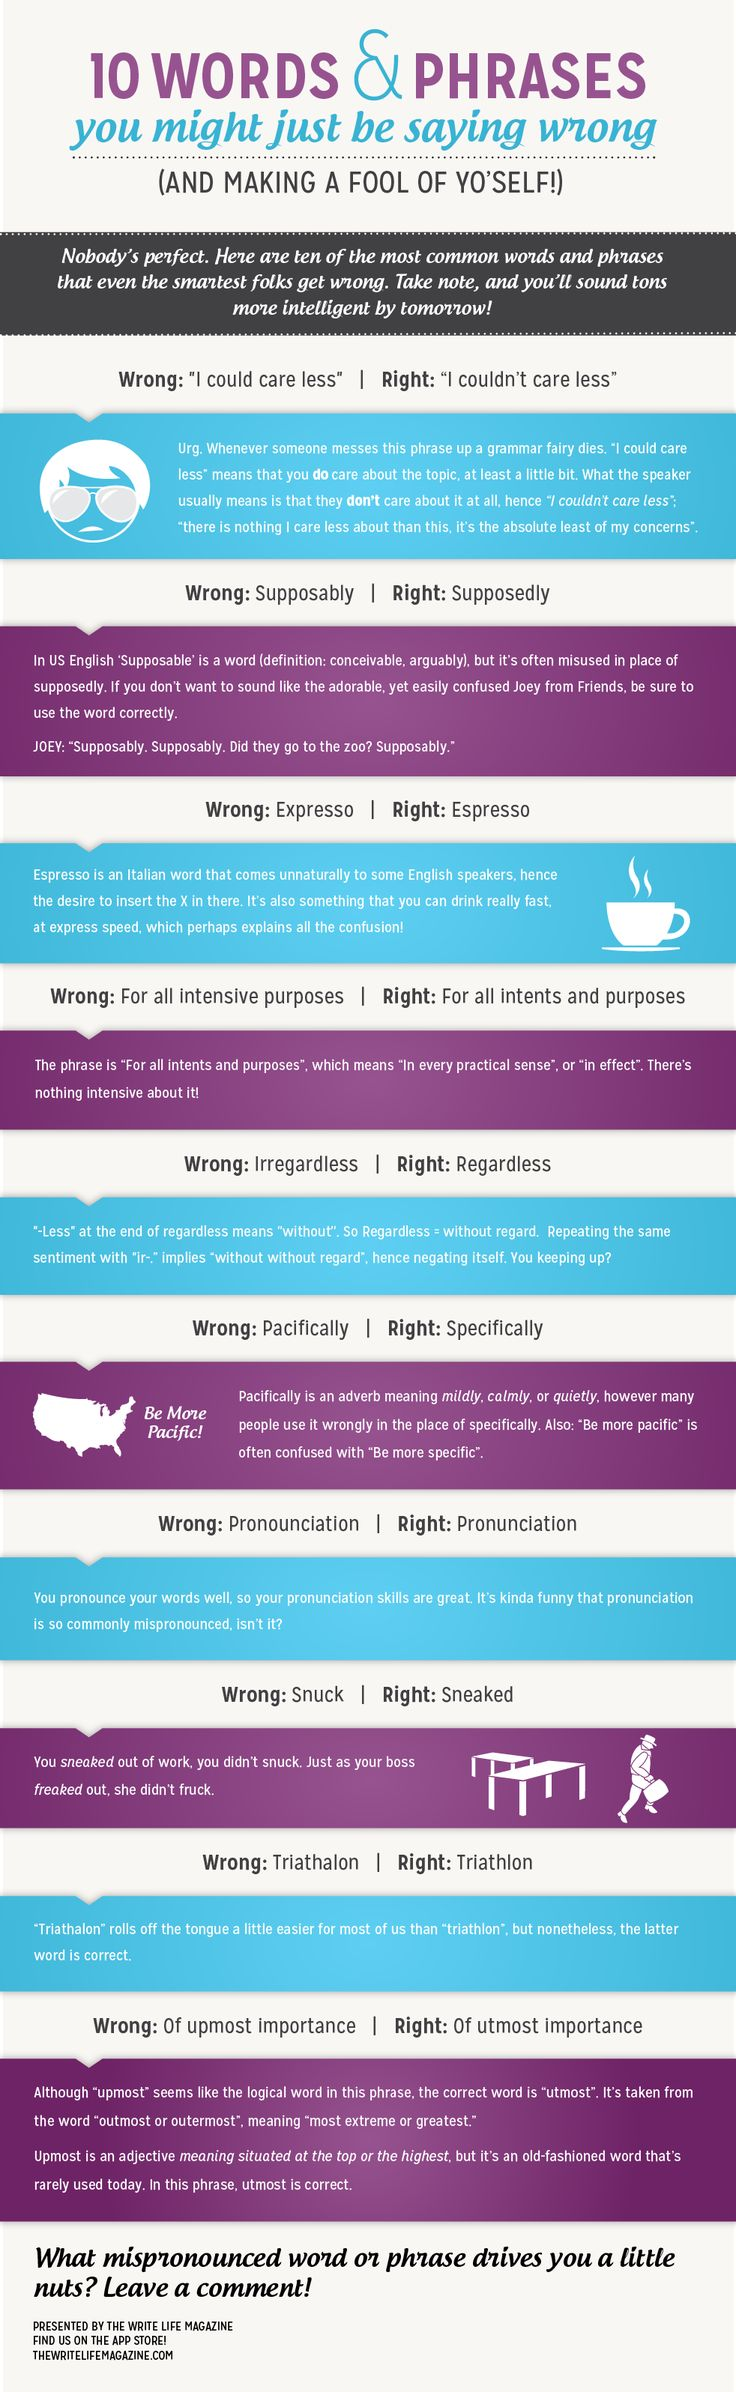 10 Words And Phrases You're Probably Saying Wrong.  Love the explanation of freaked/fruck. LOL!